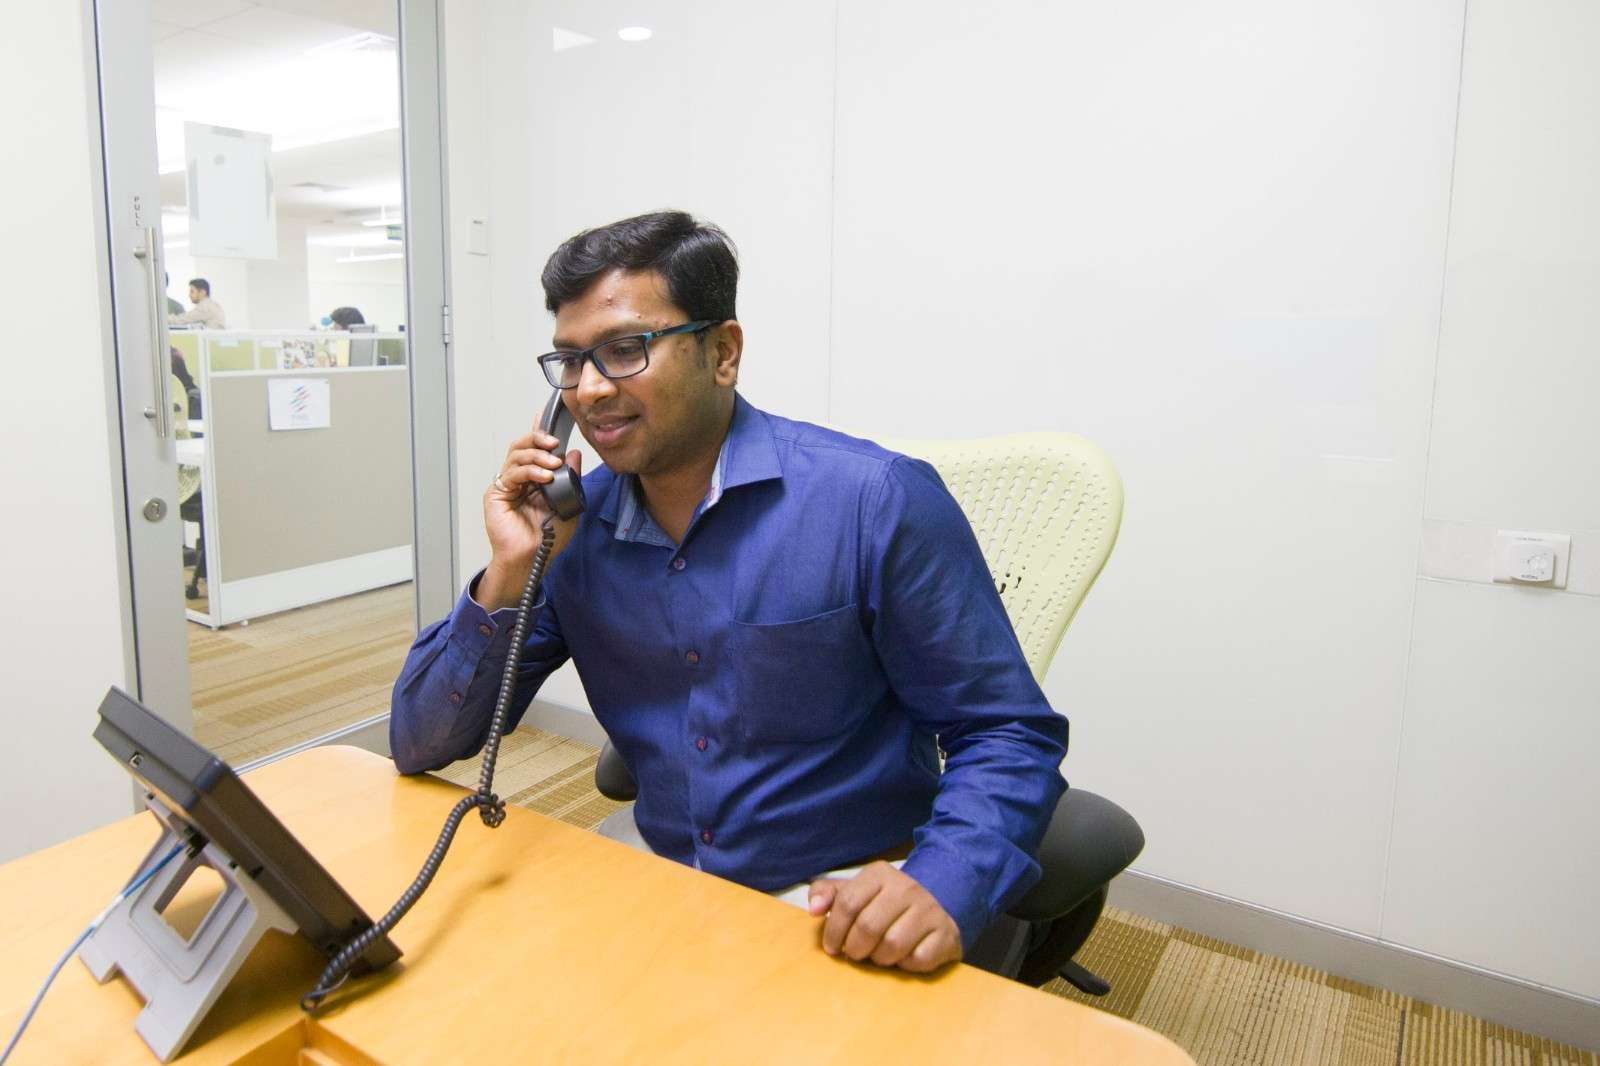 Employee on the phone in a private office